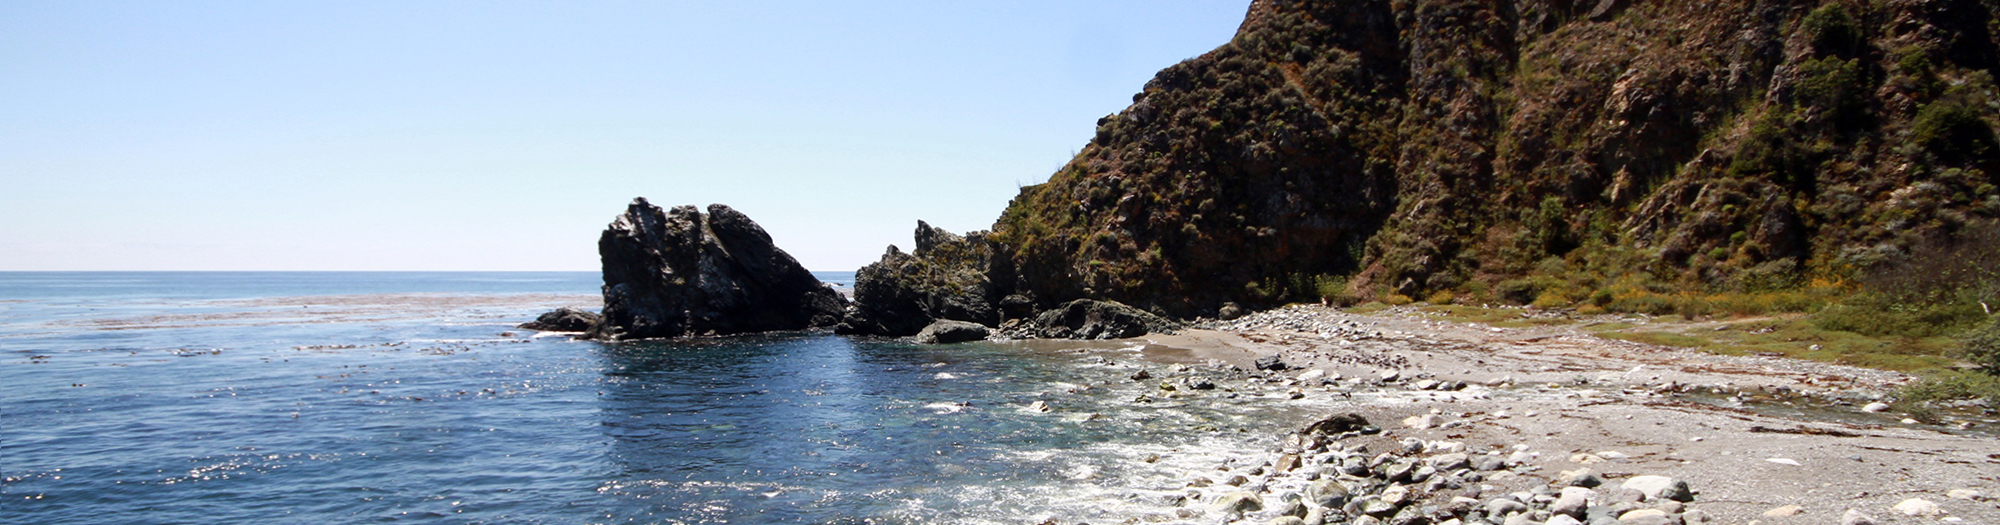 WS Big Sur below program list 214.jpg